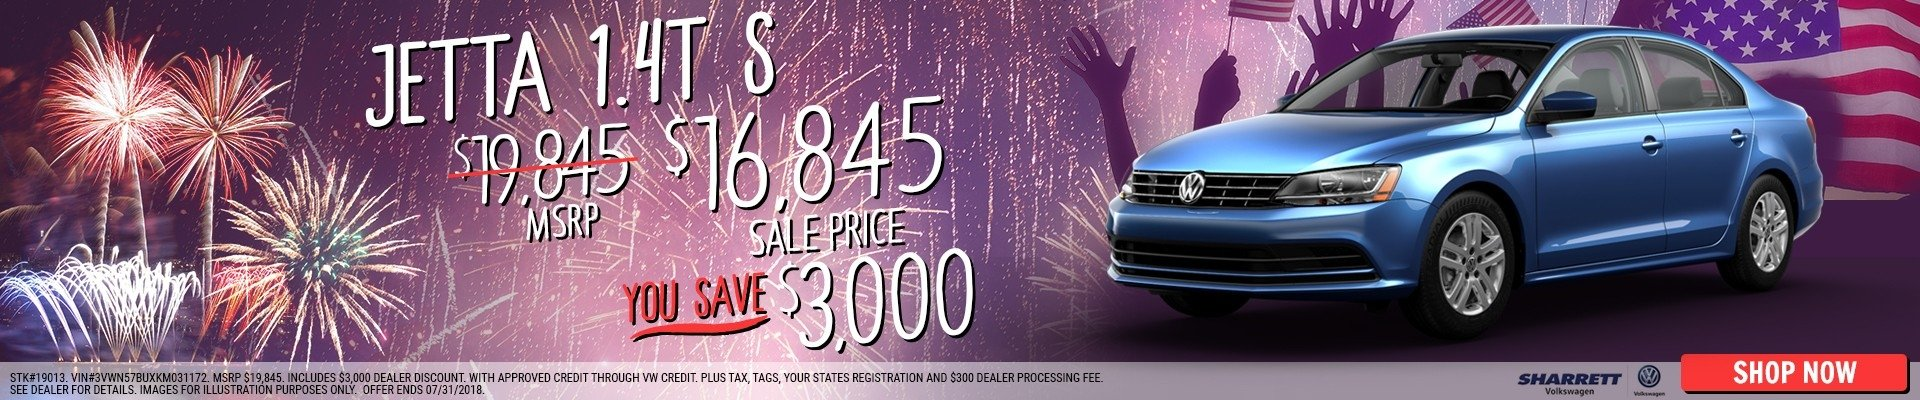 Save $3000 on a new 2018 Volkswagen Jetta S